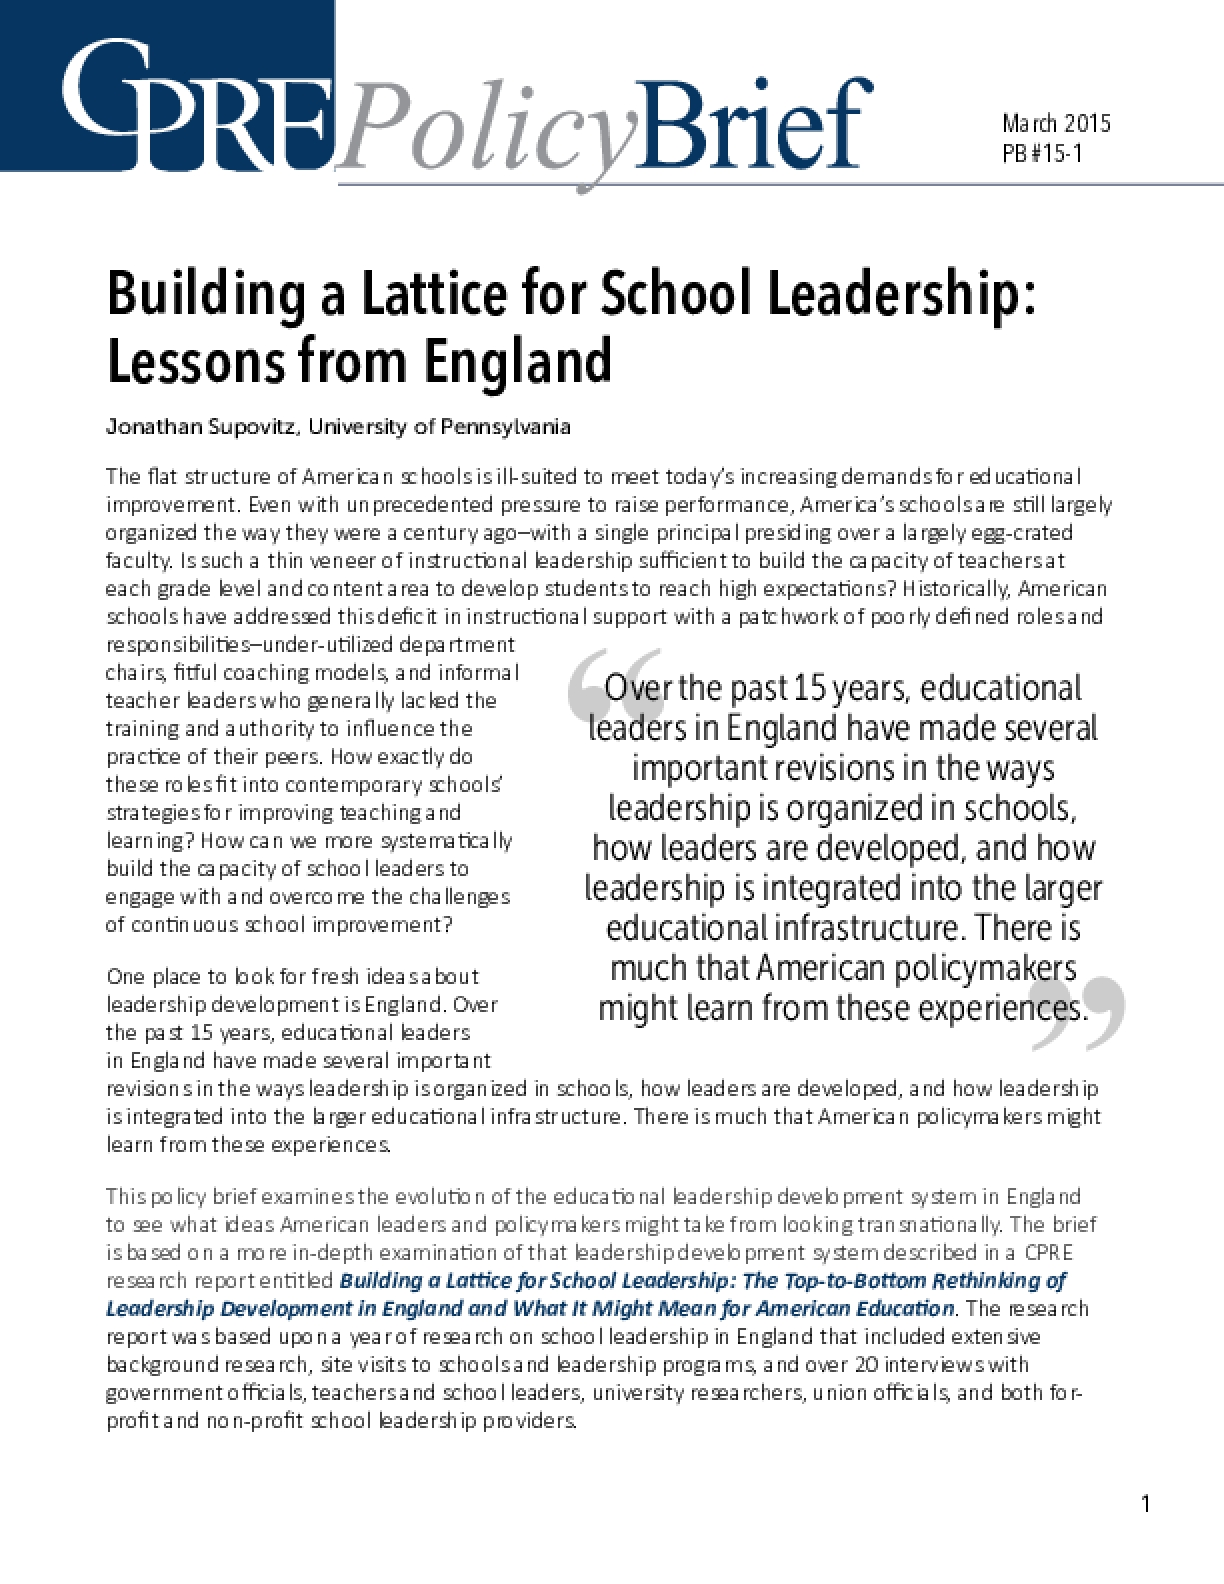 Building a Lattice for School Leadership: Lessons From England